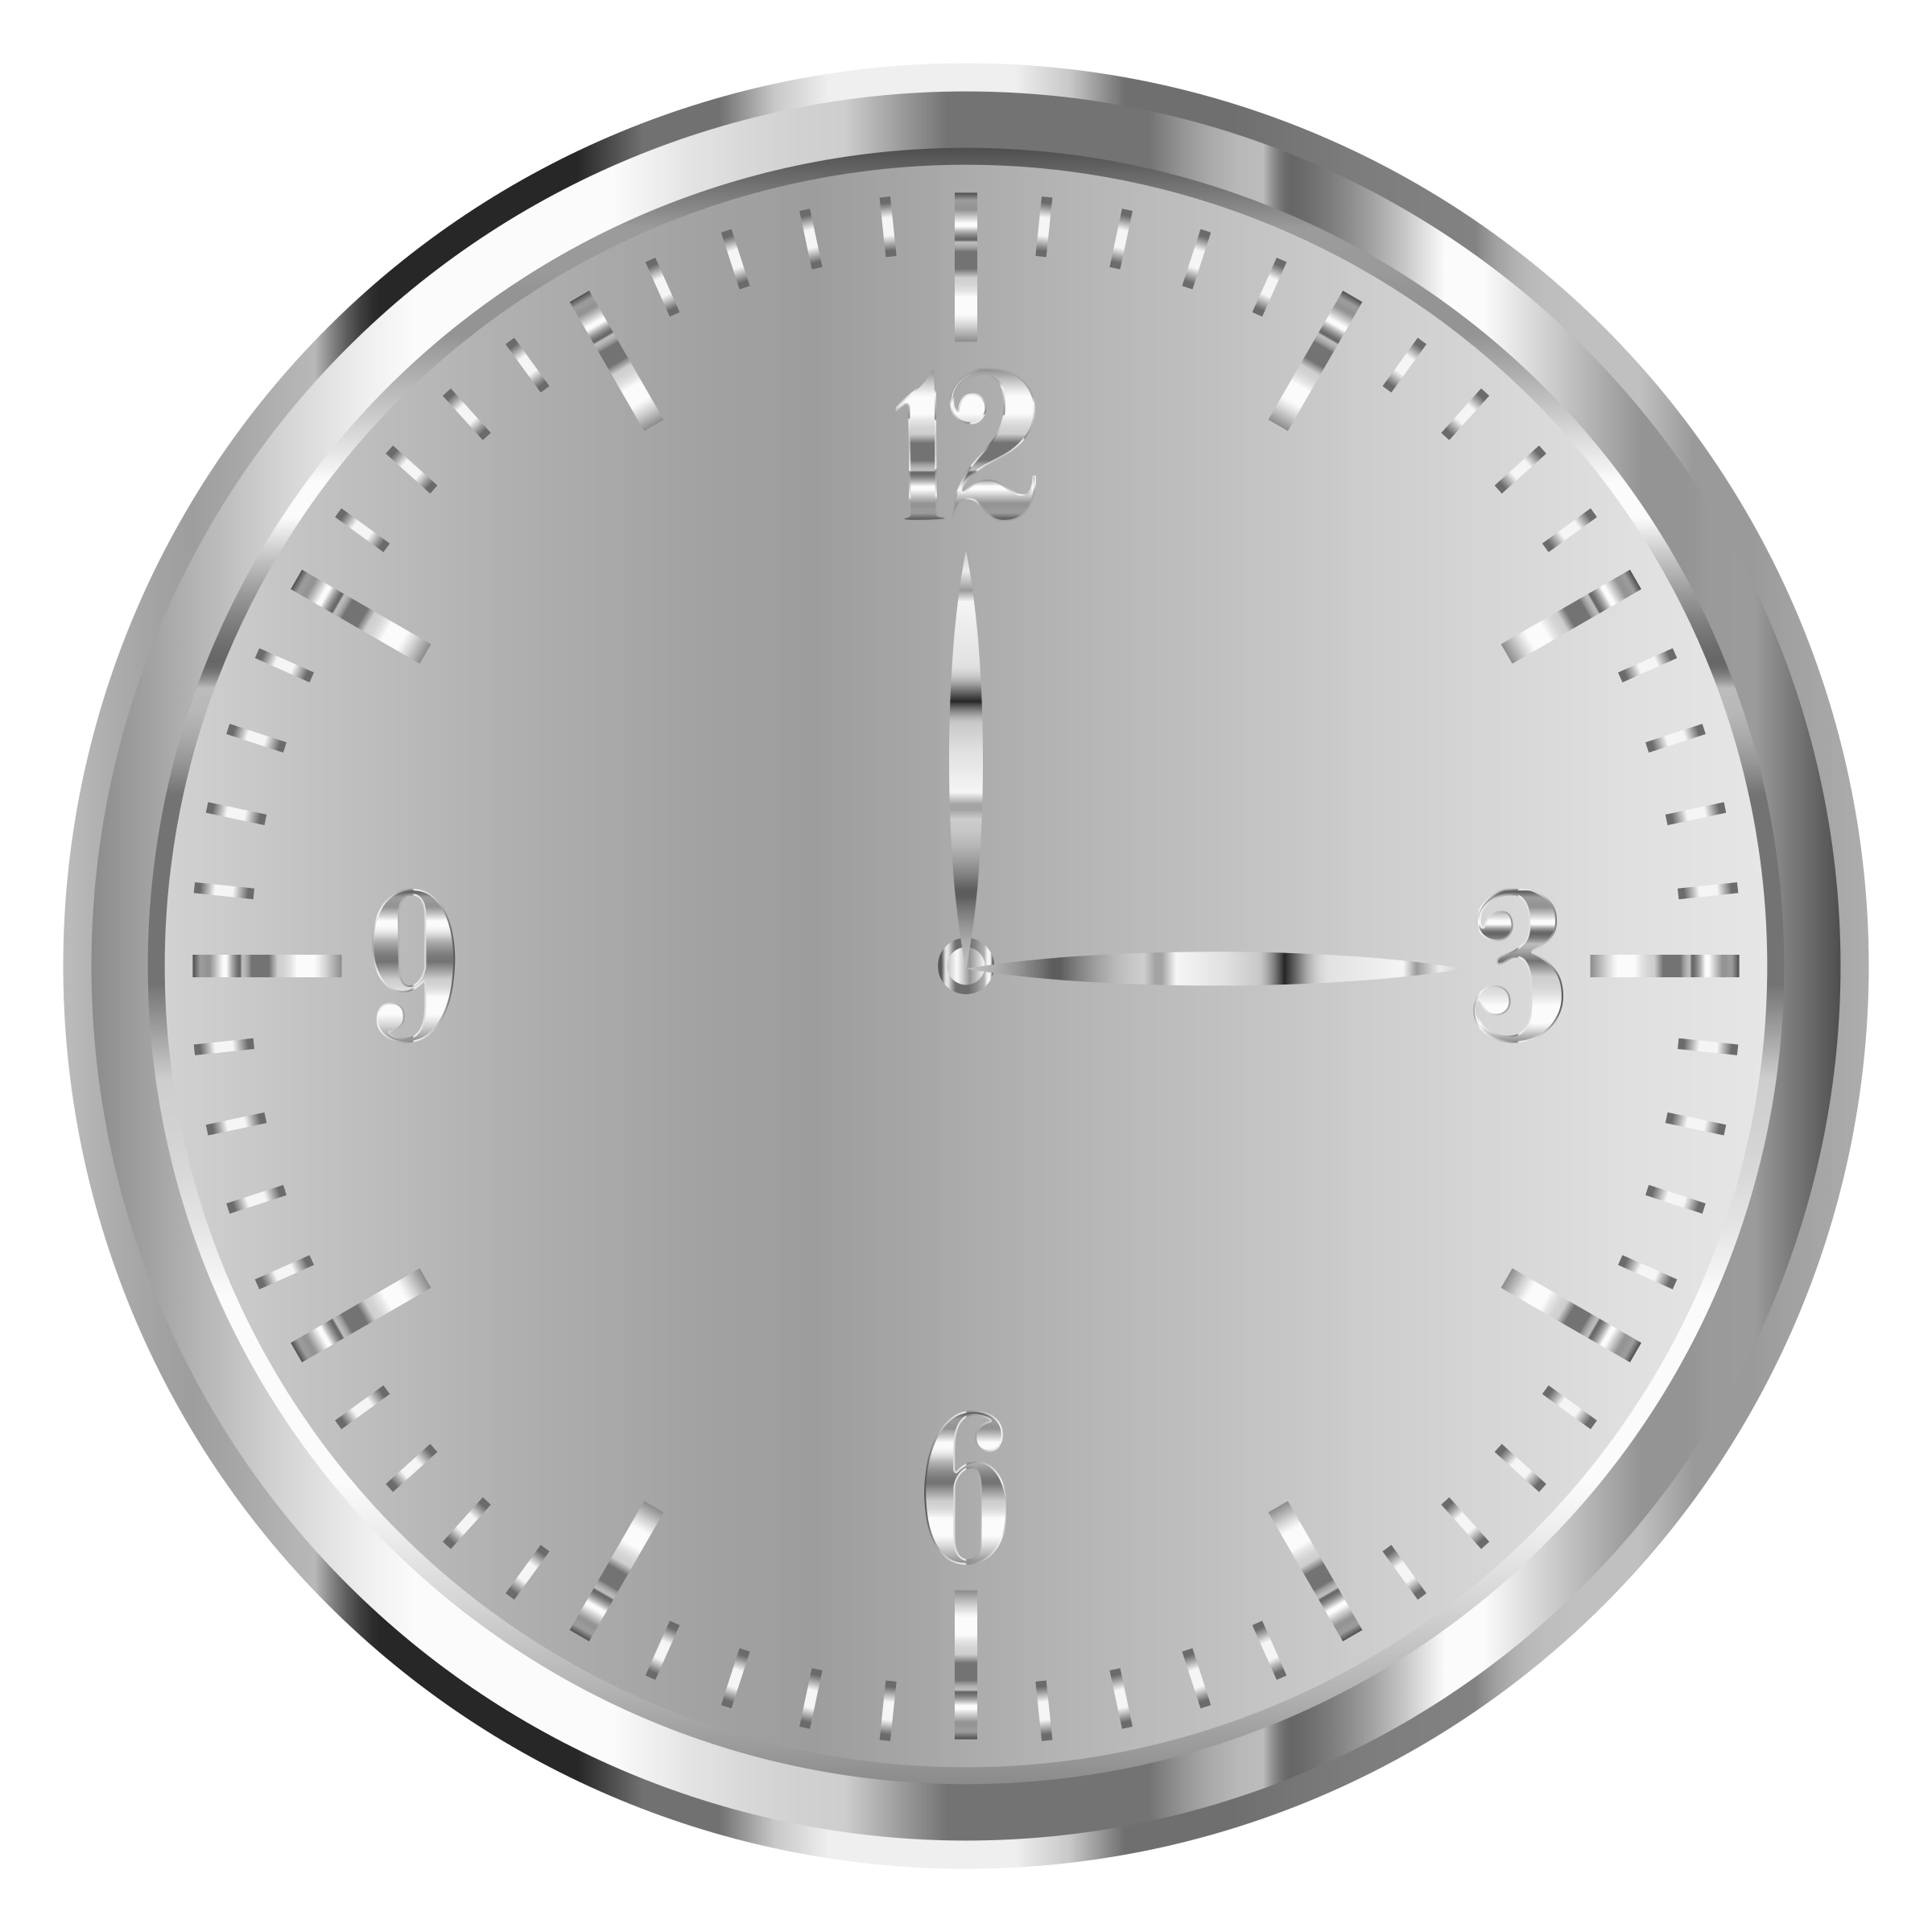 Stainless Steel Clock by GDJ